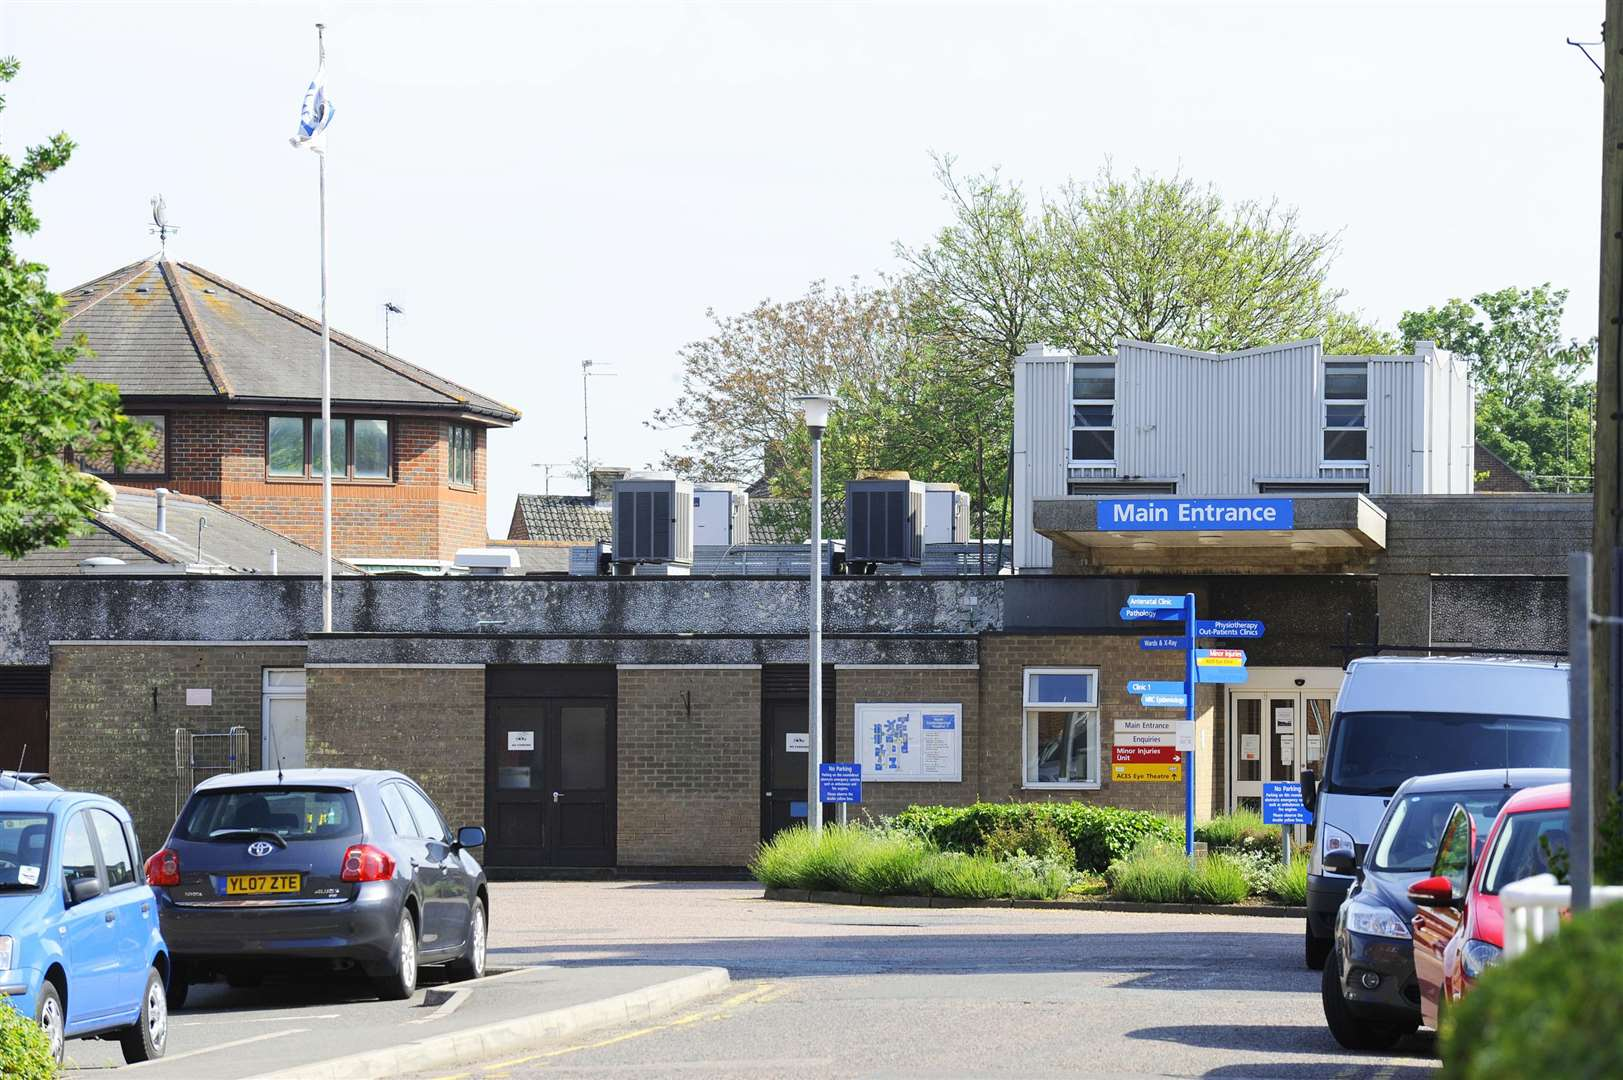 The pilot scheme has been launched at the North Cambs Hospital in Wisbech.